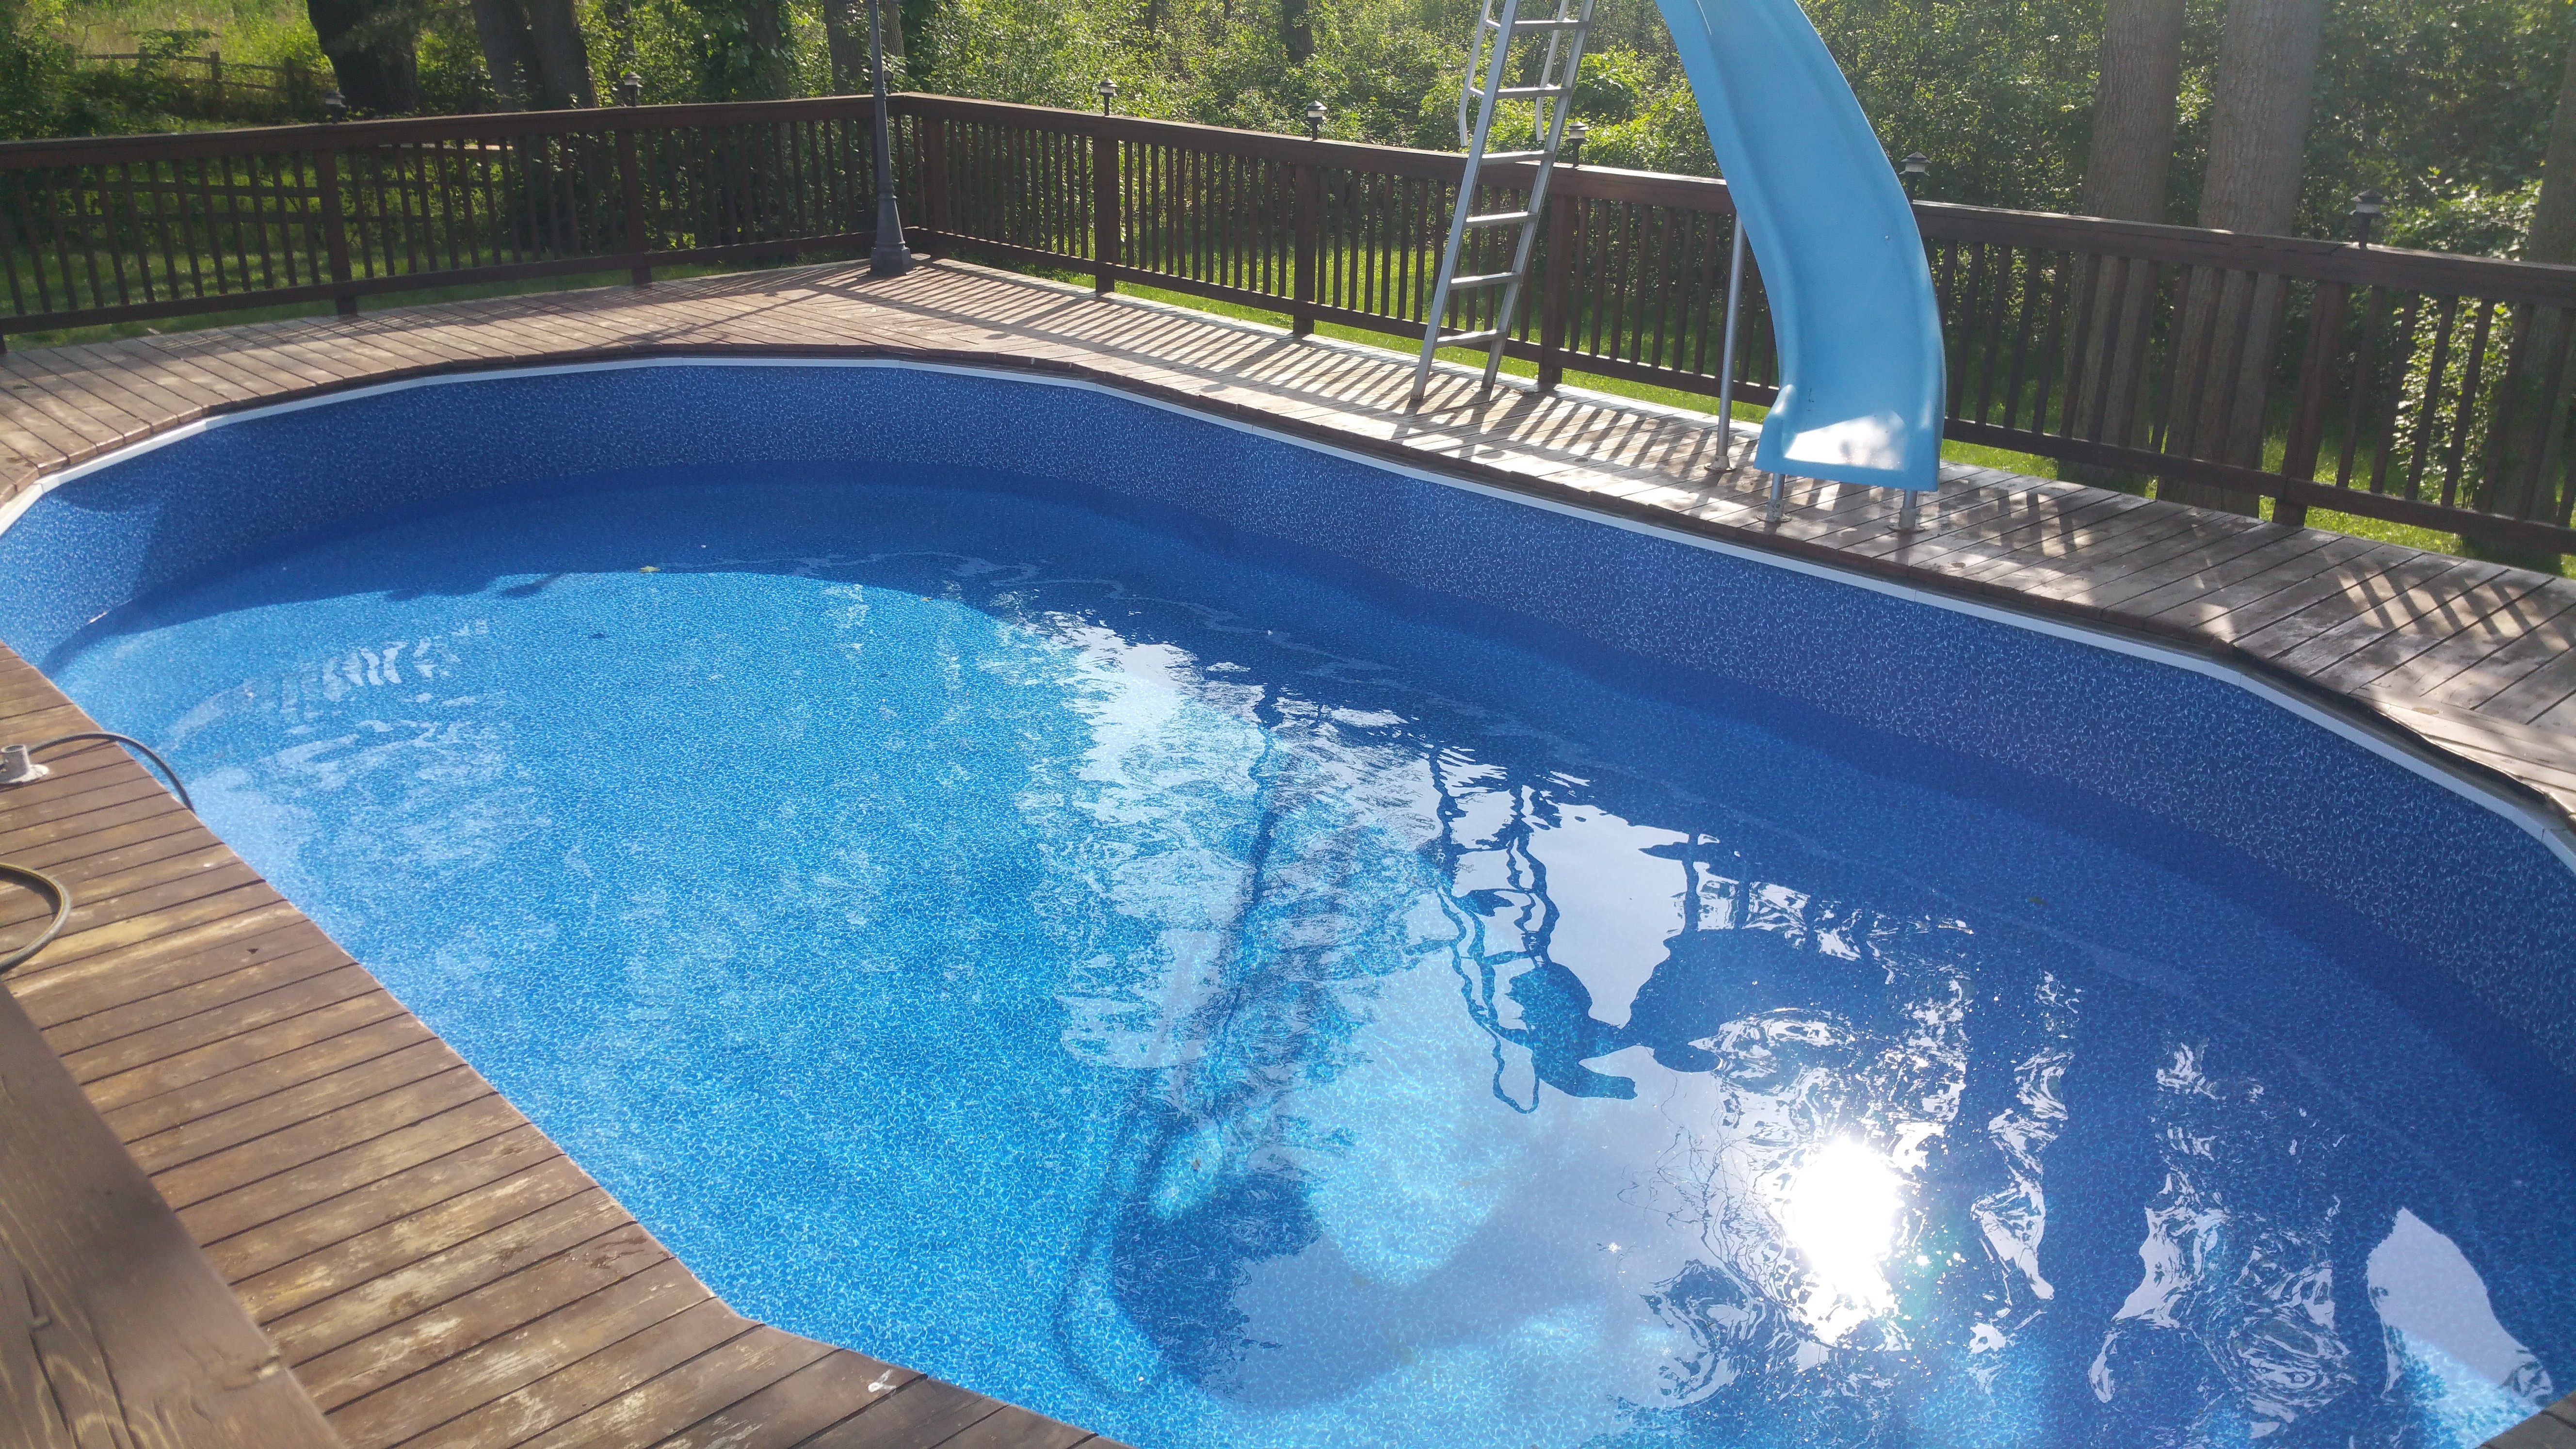 Pool Liner Replacement Crystal Clear Pools Mi